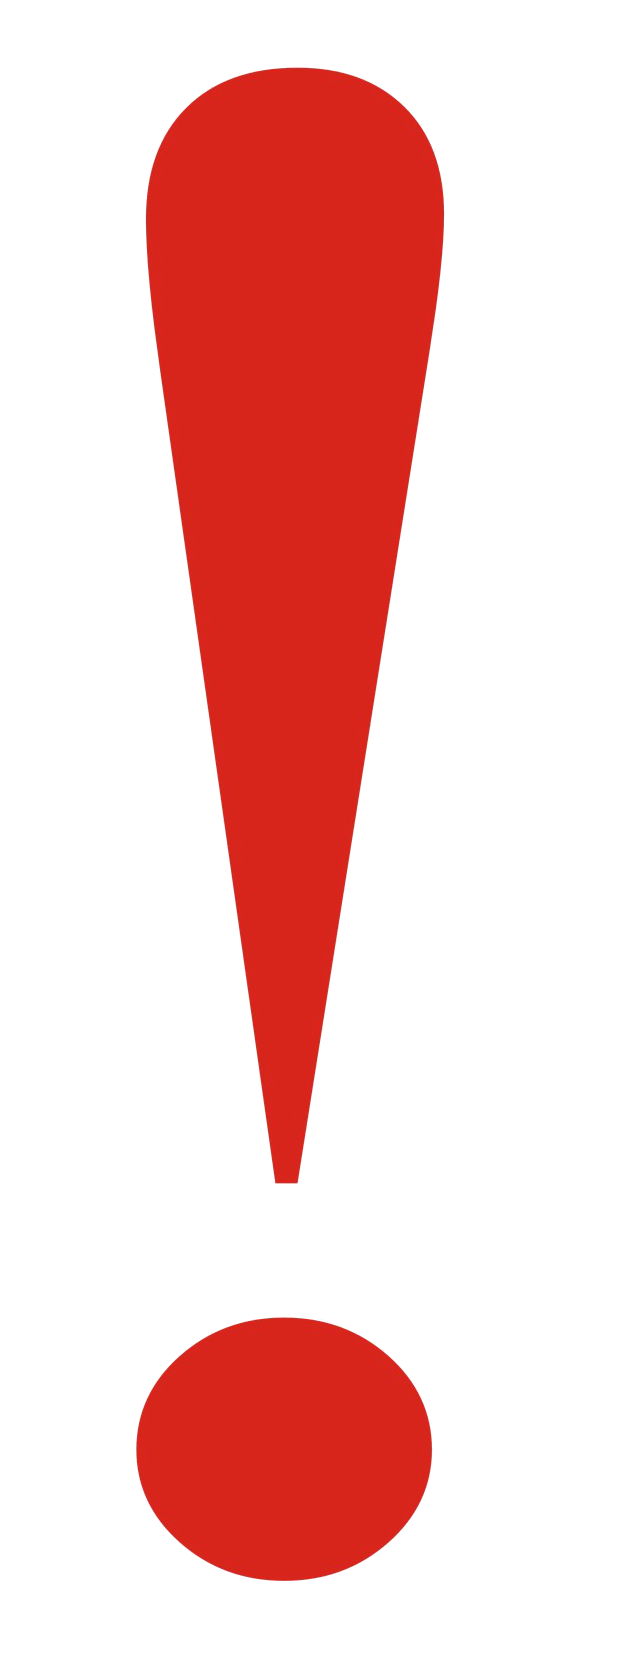 exclamation_mark_PNG13